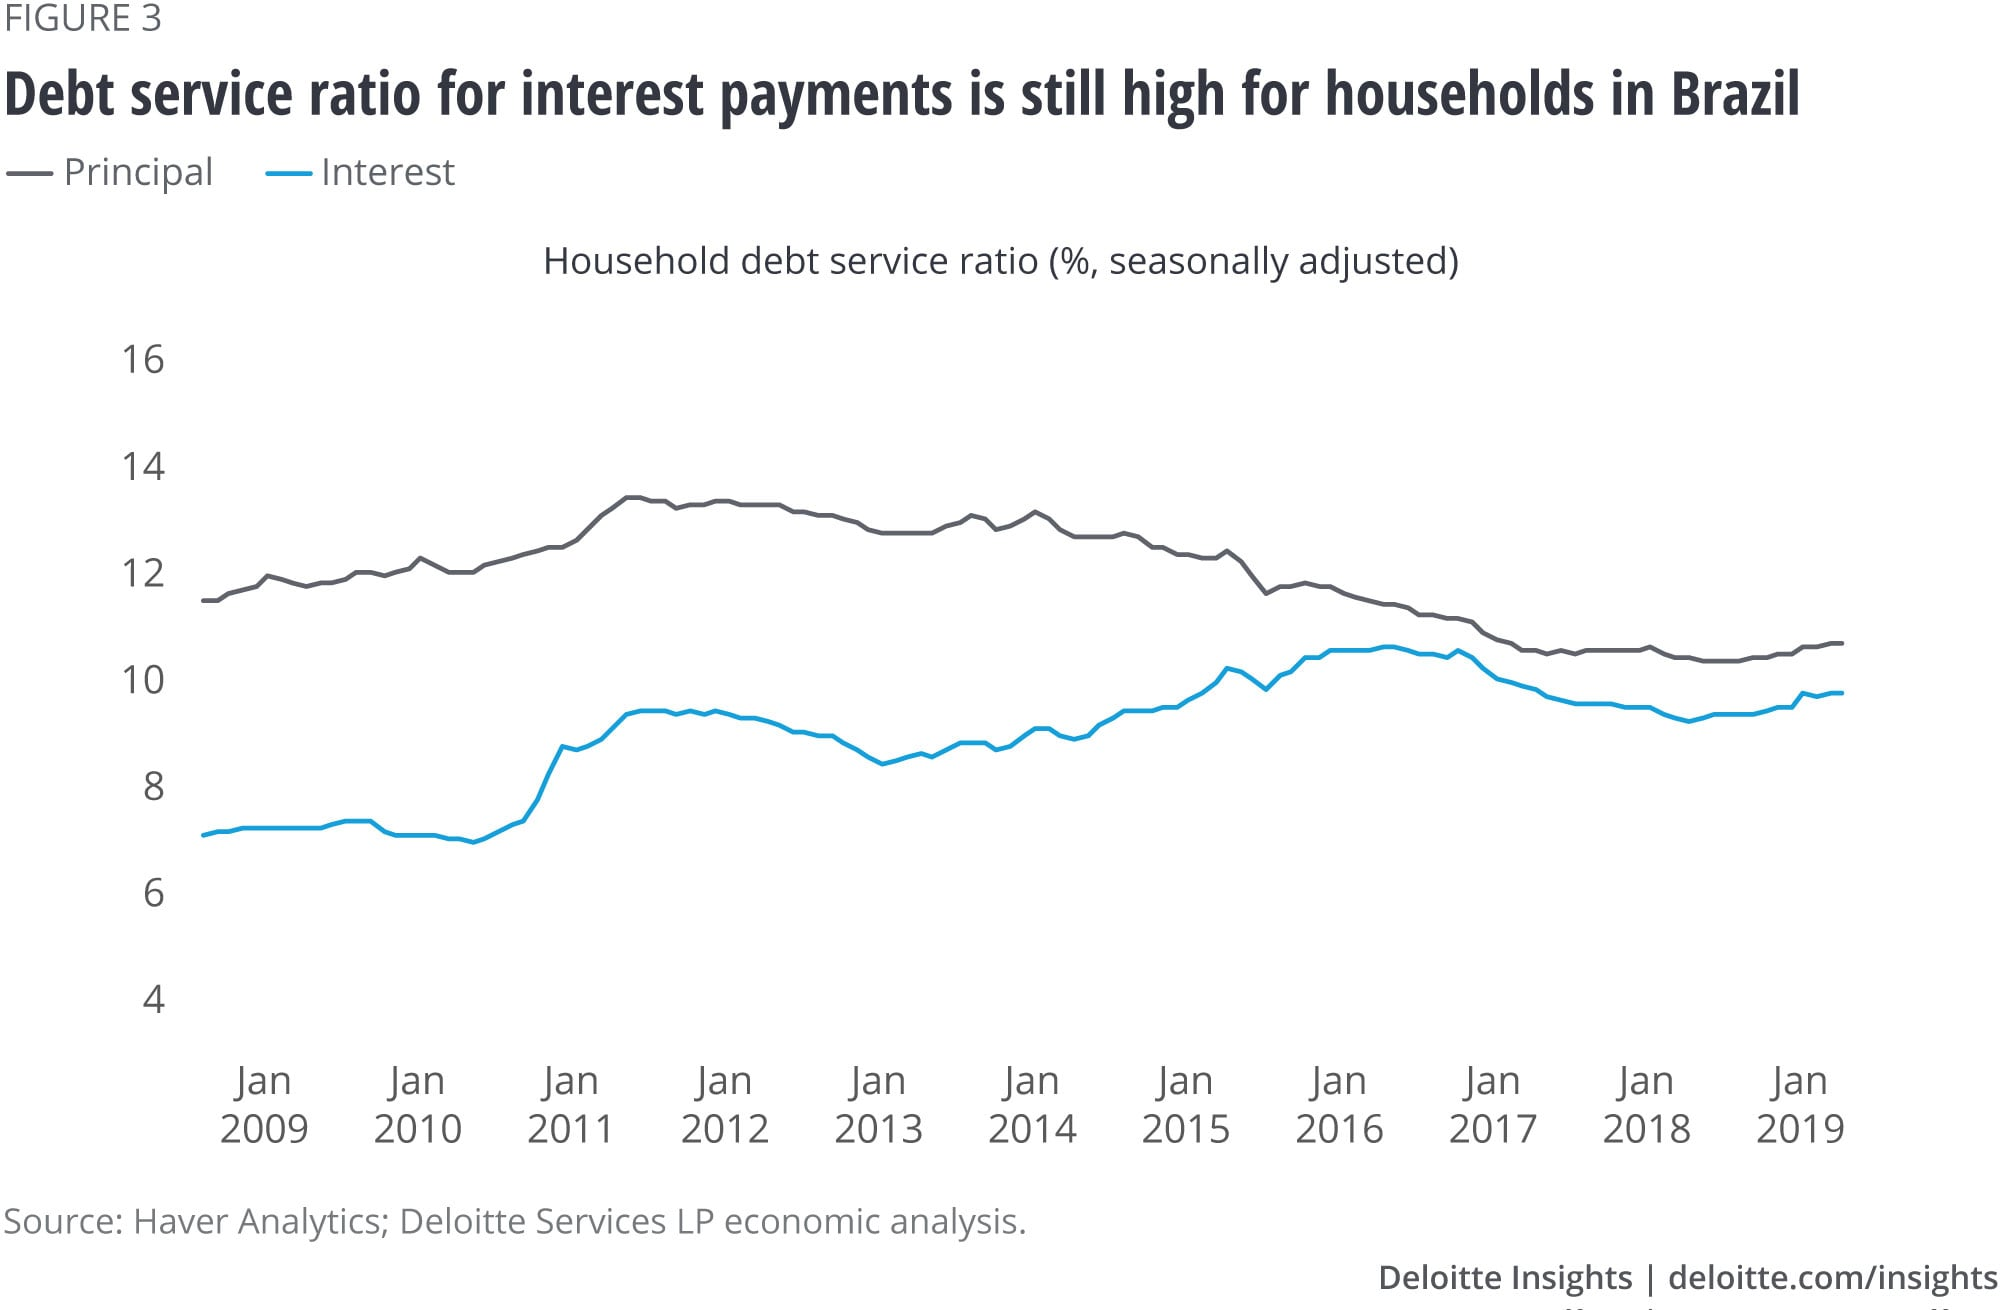 Debt service ratio for interest payments is still high for households in Brazil